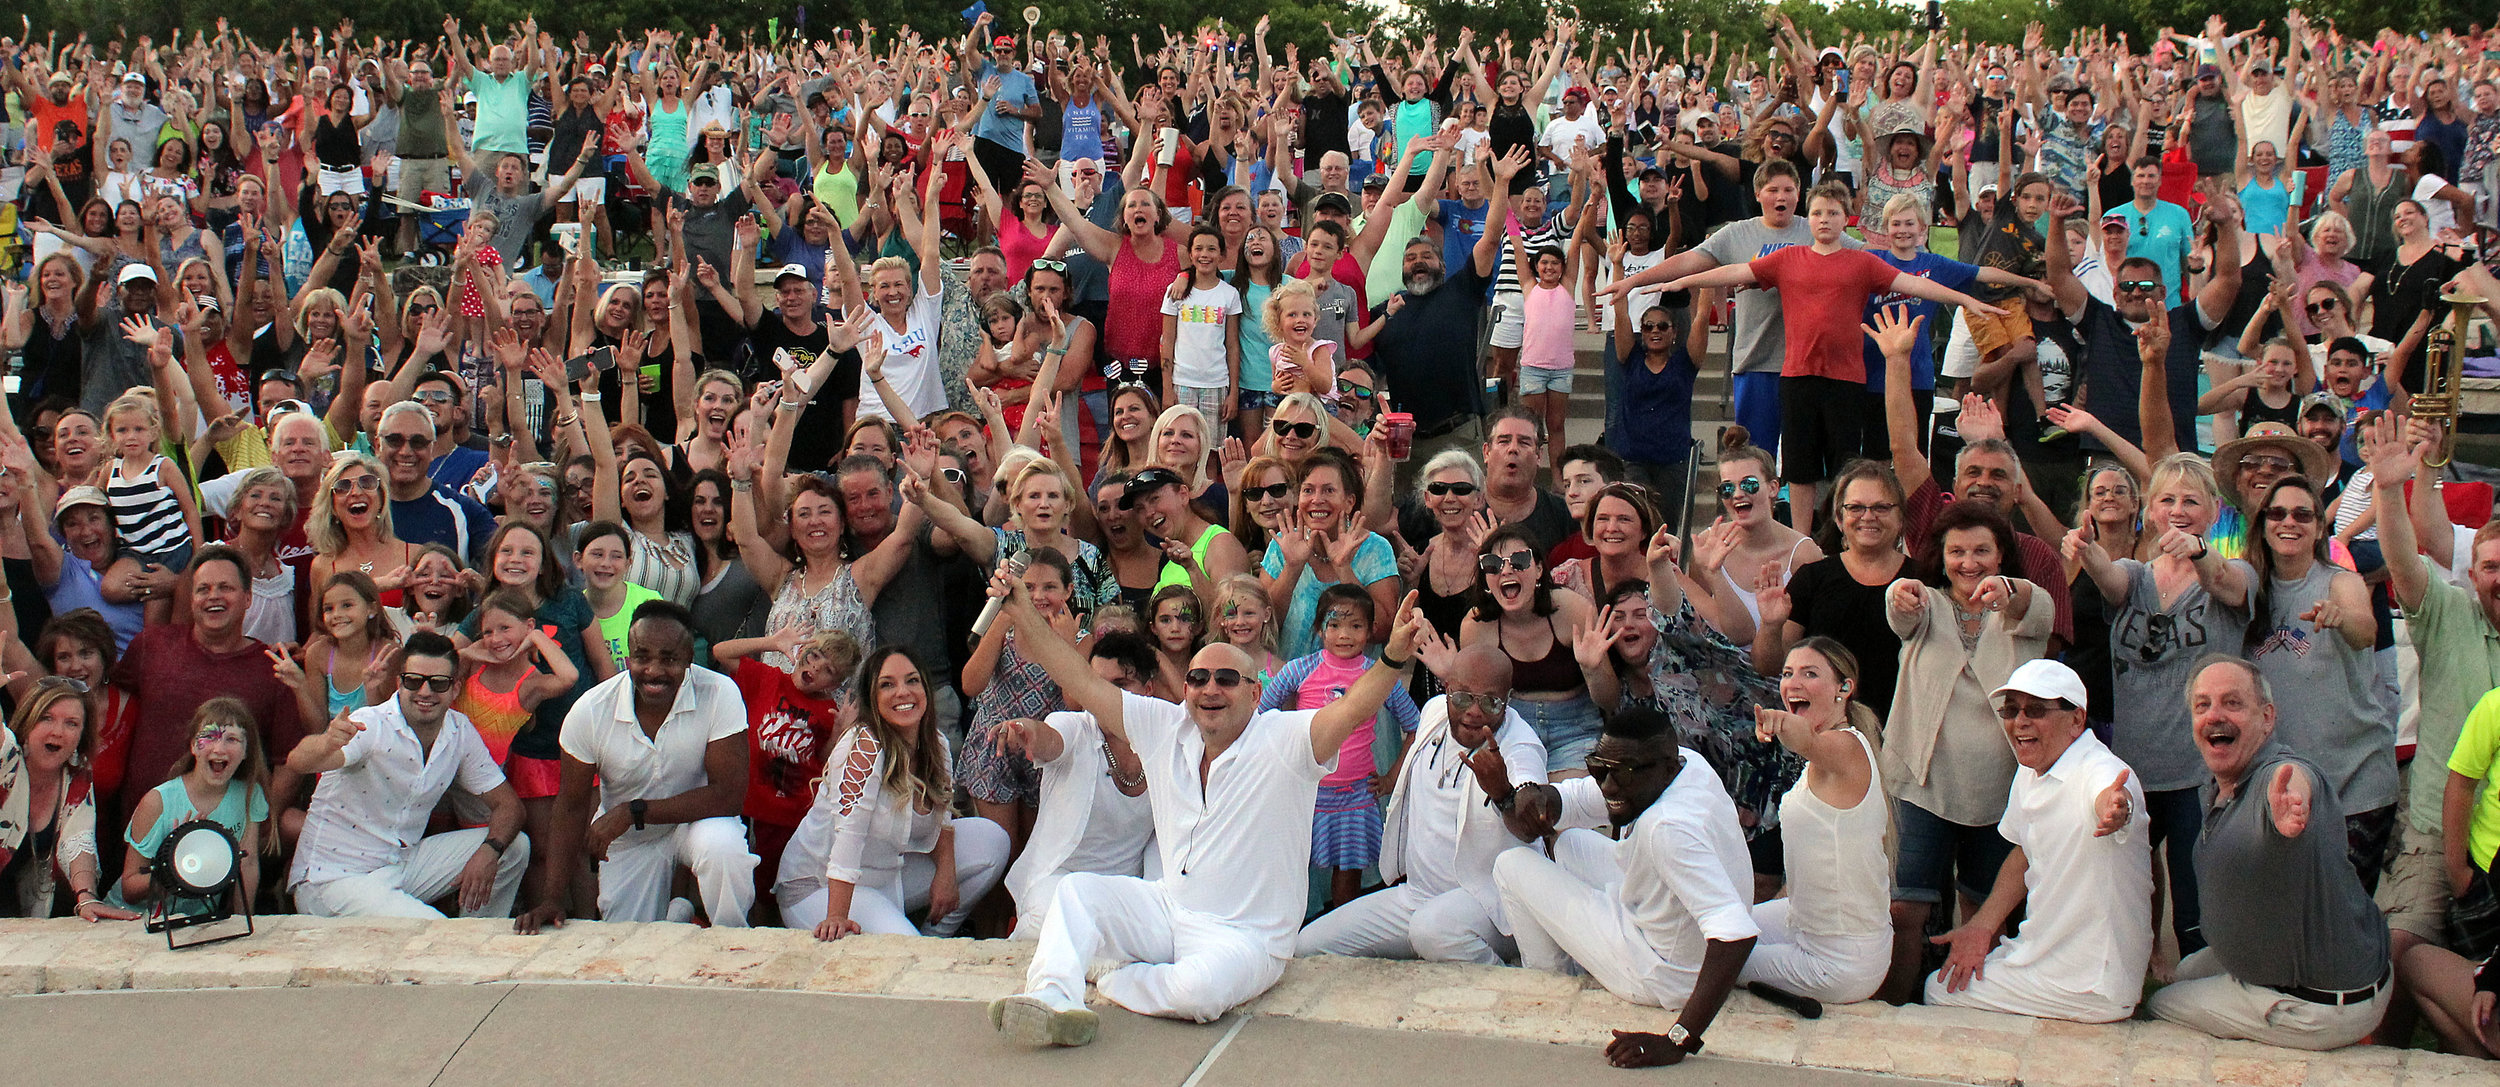 Emerald City Band 'selfie' with concert goers at Murphy amphitheater.